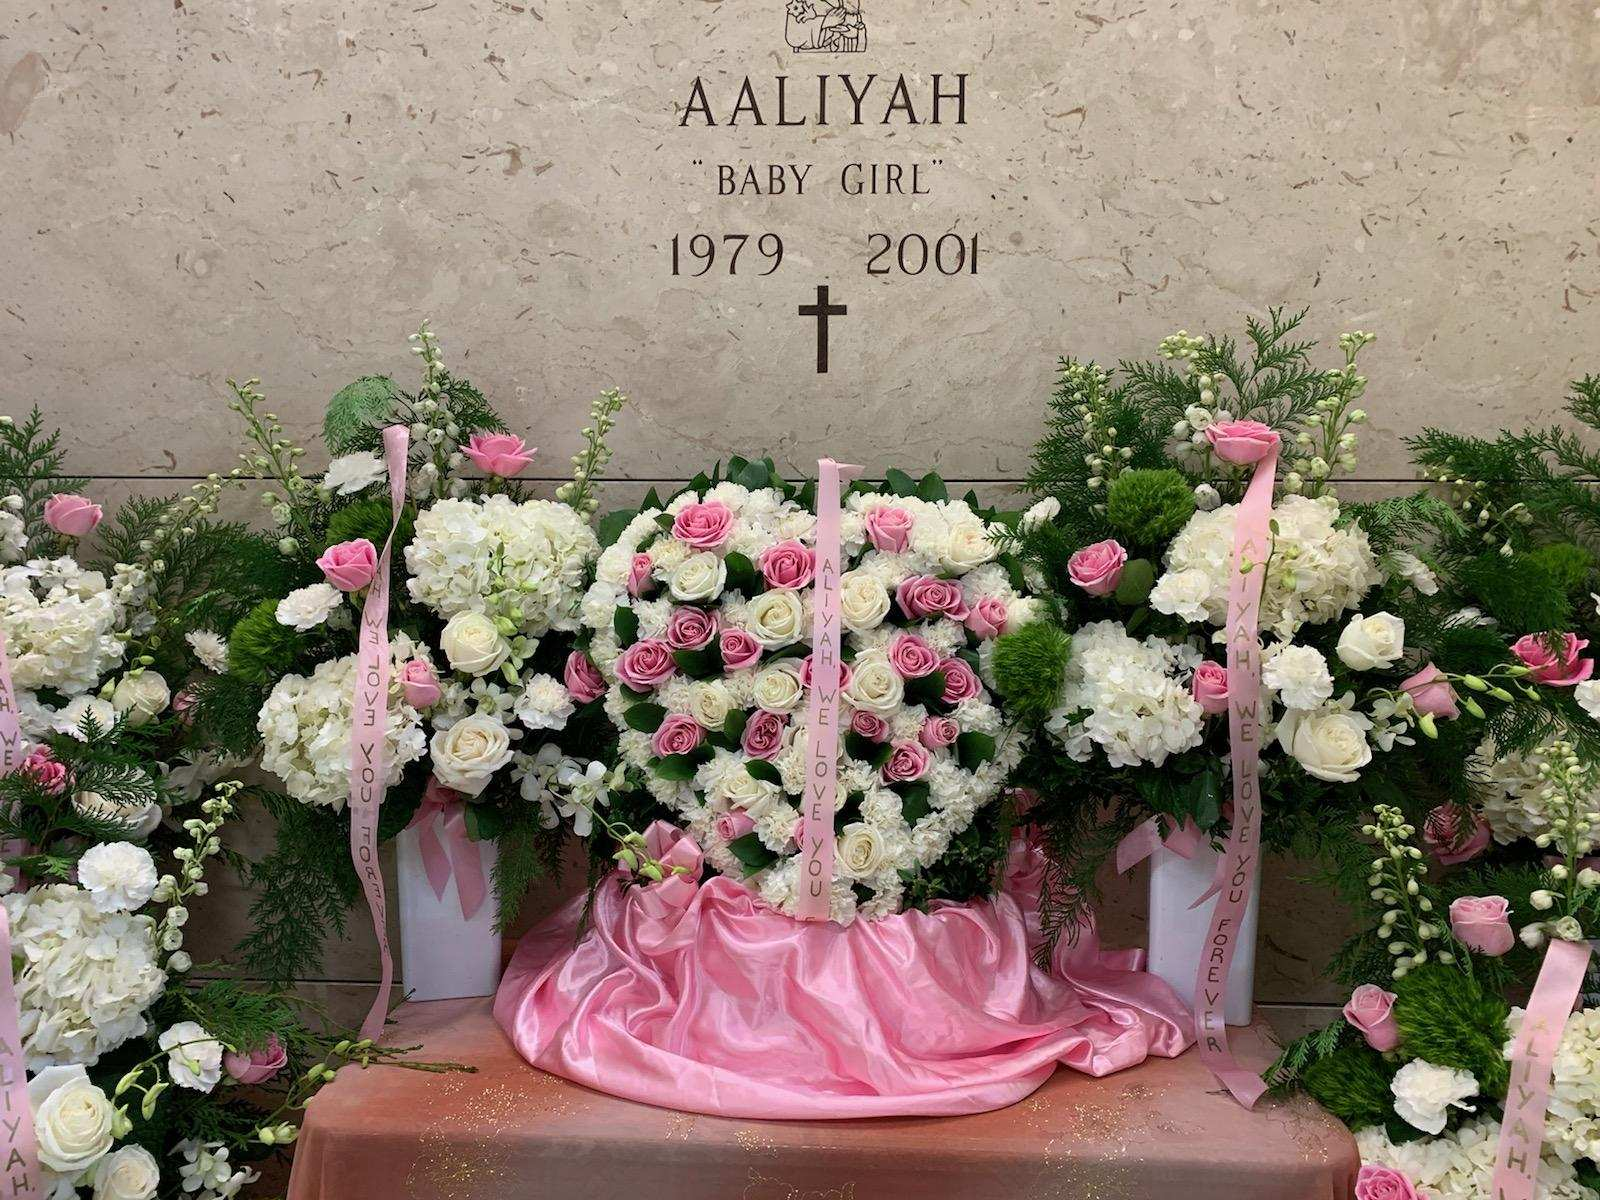 Happy Birthday Aaliyah, We Love You Forever!